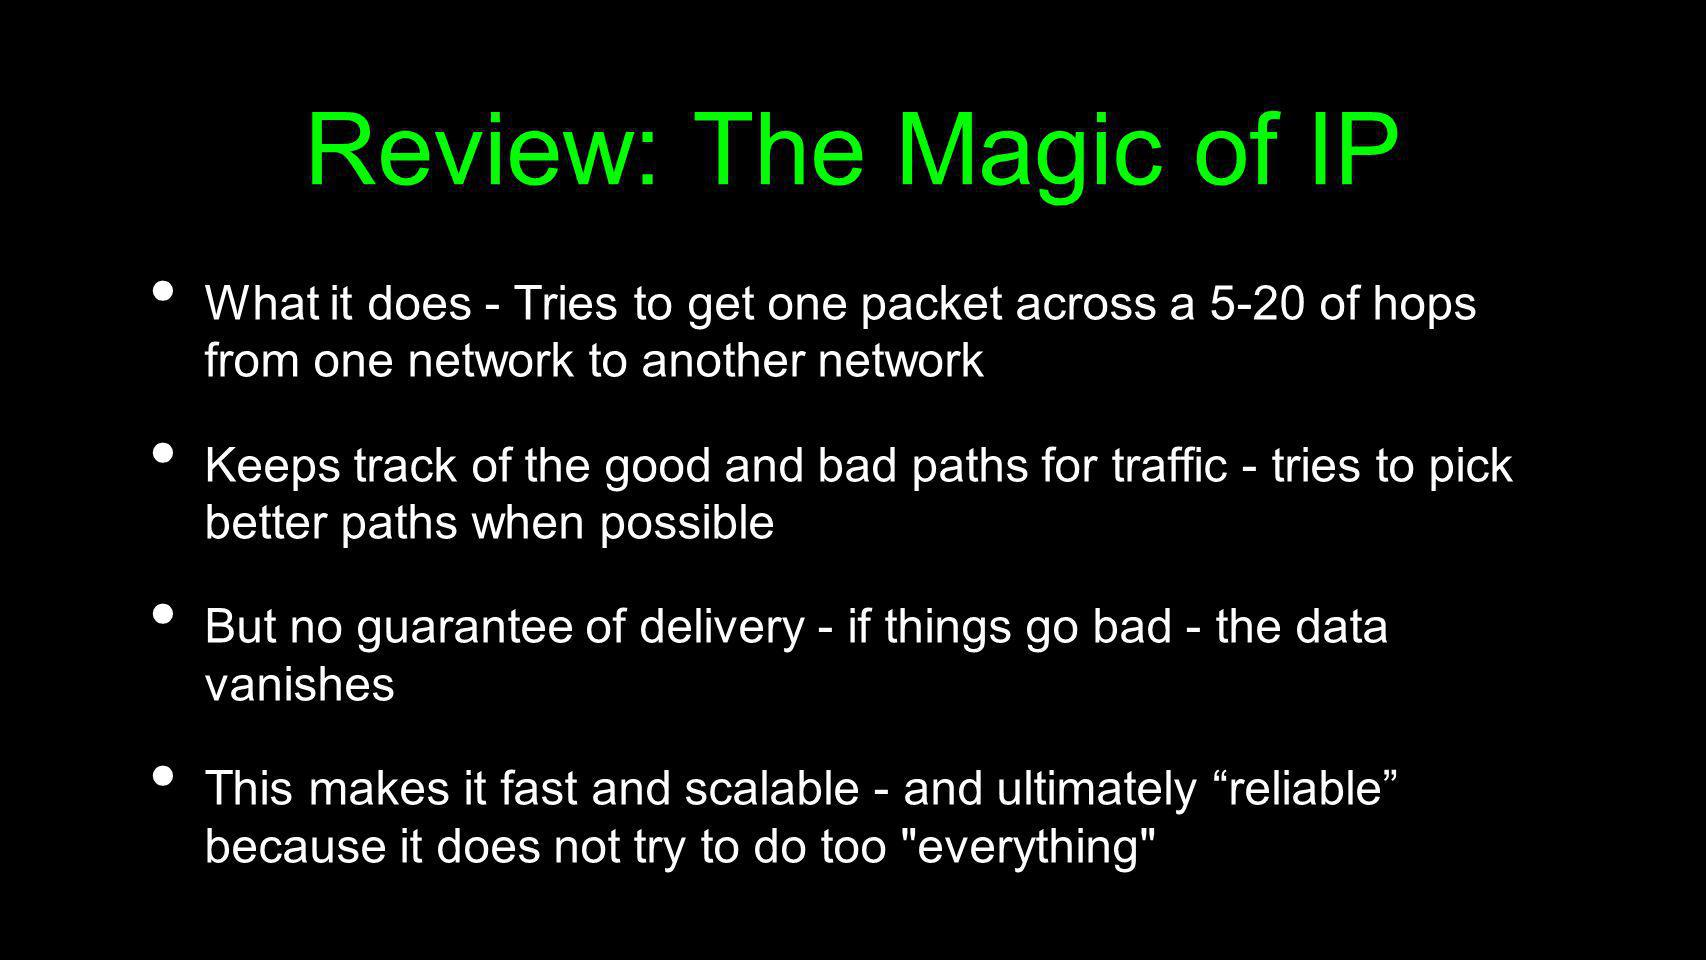 Review: The Magic of IP What it does - Tries to get one packet across a 5-20 of hops from one network to another network.